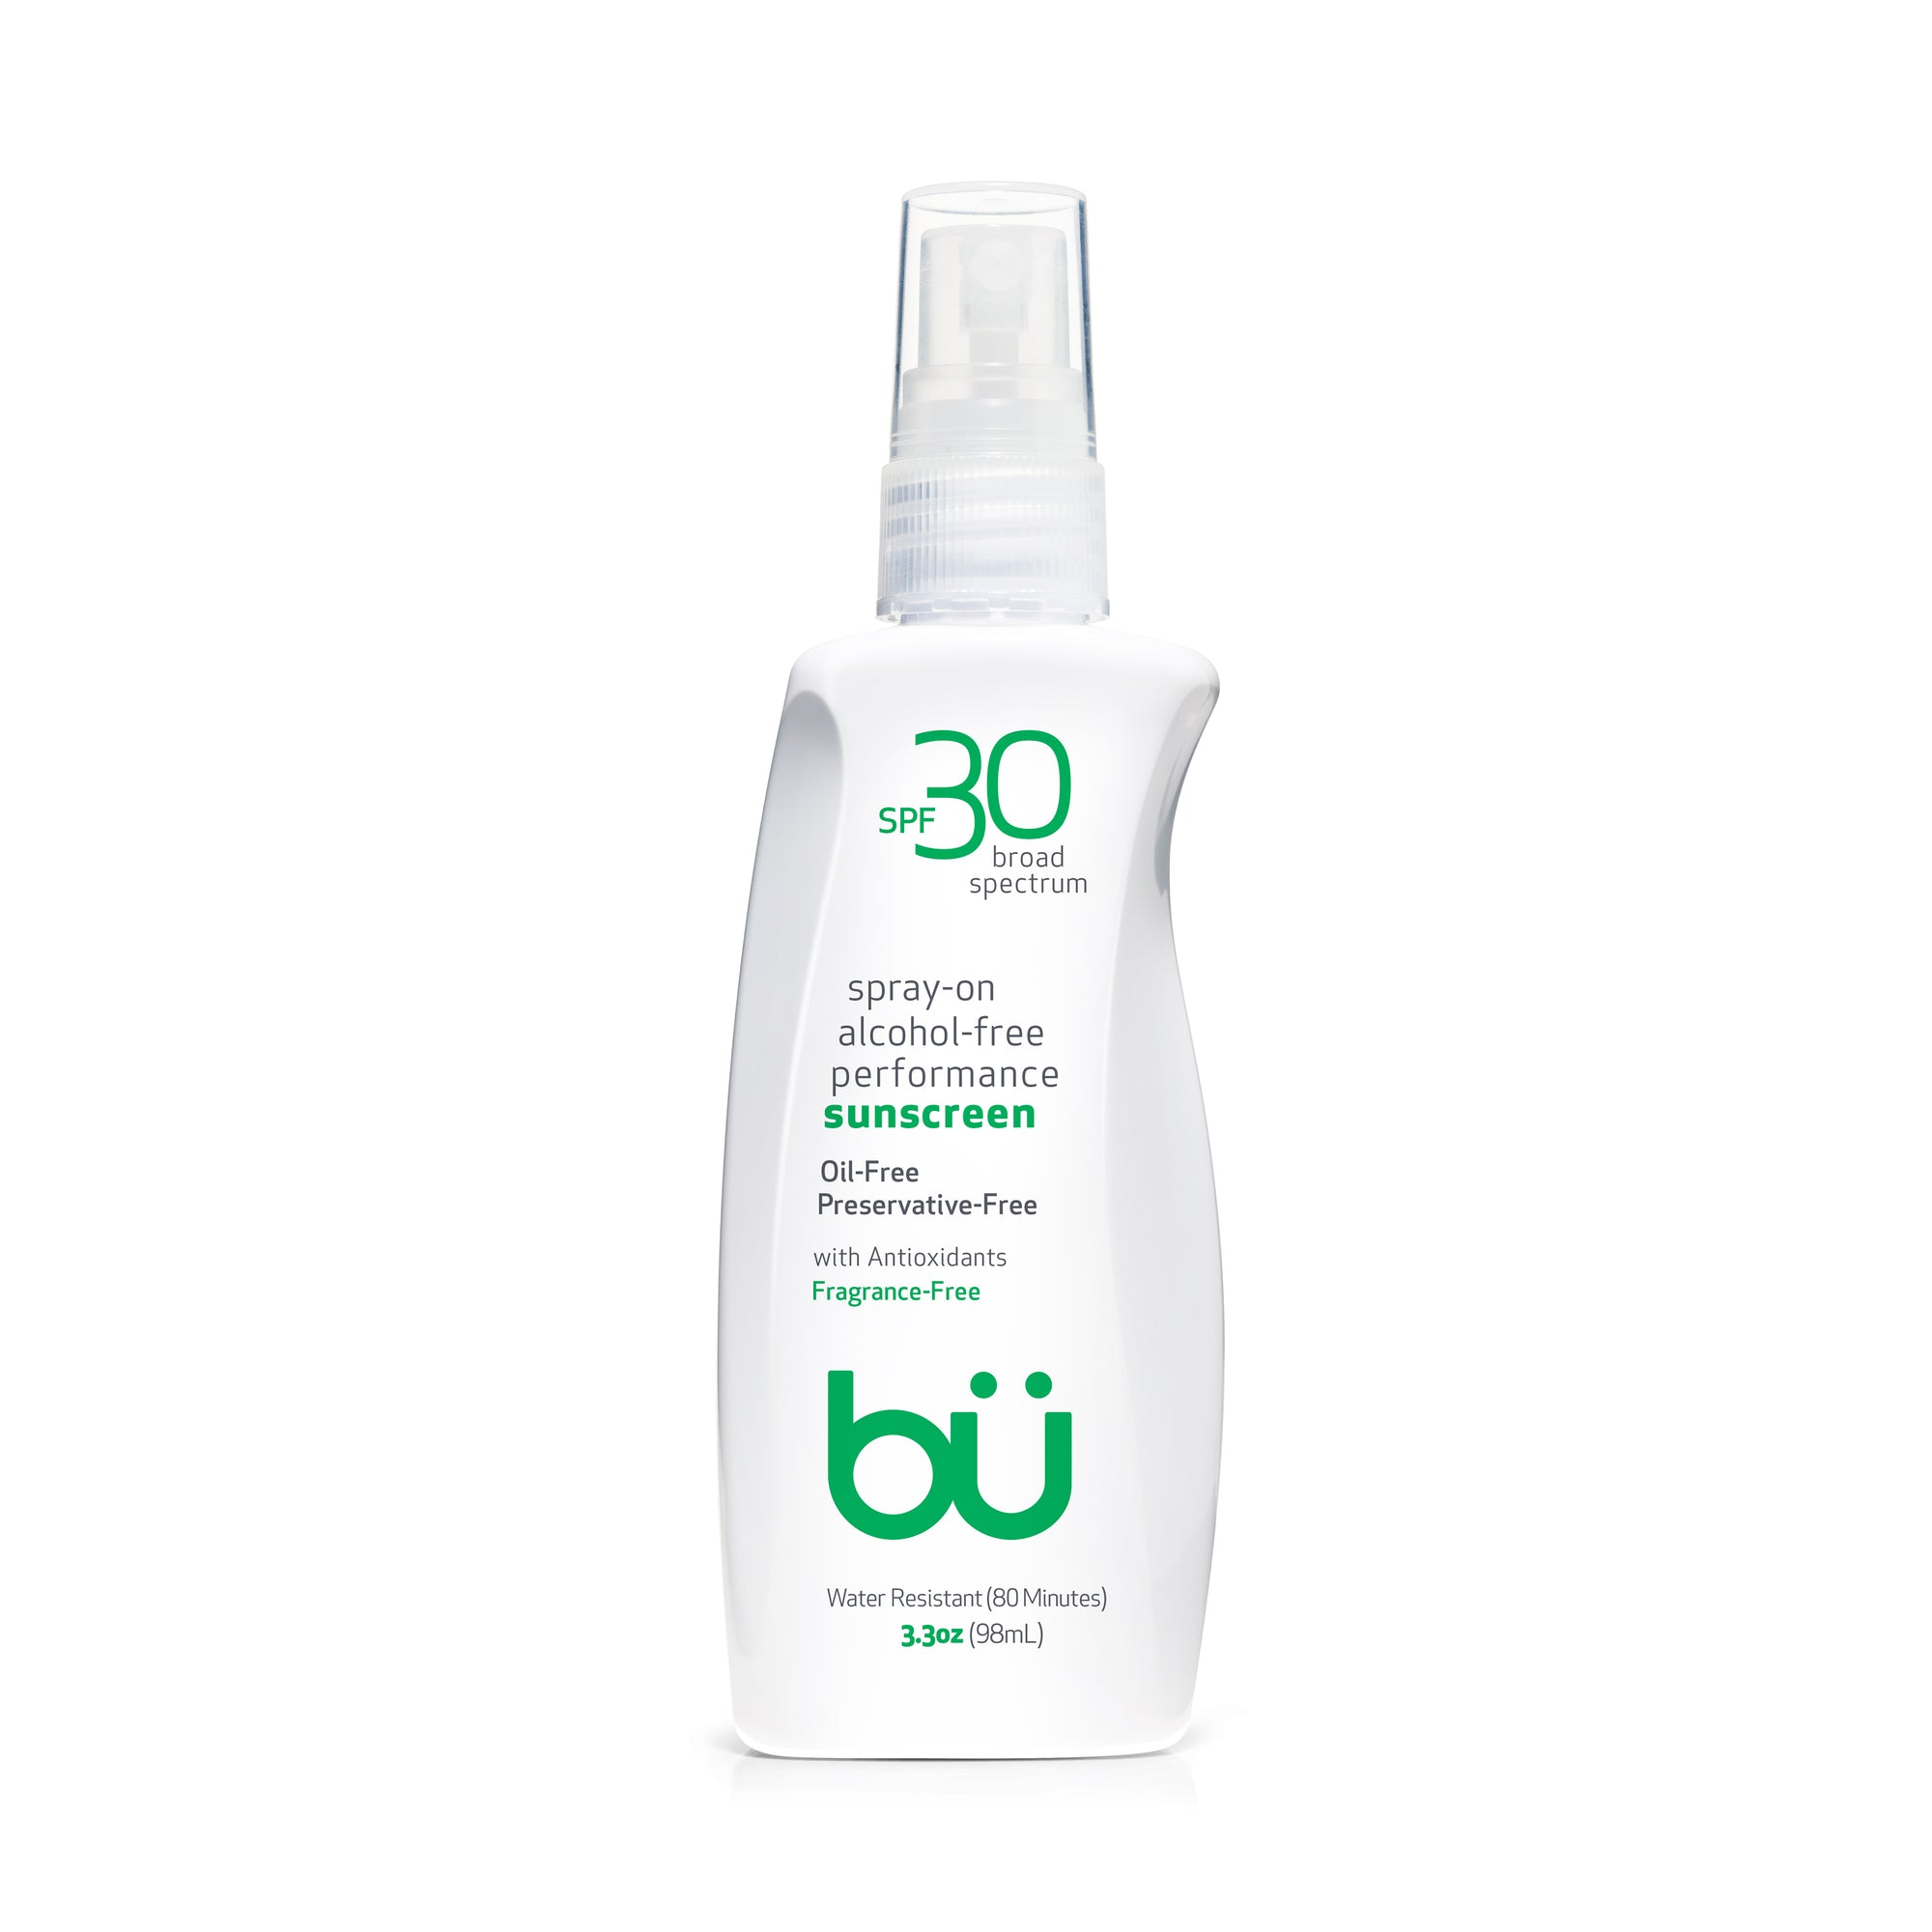 Bu SPF 30 Ultrafine WOWmist Sunscreen - Fragrance-Free